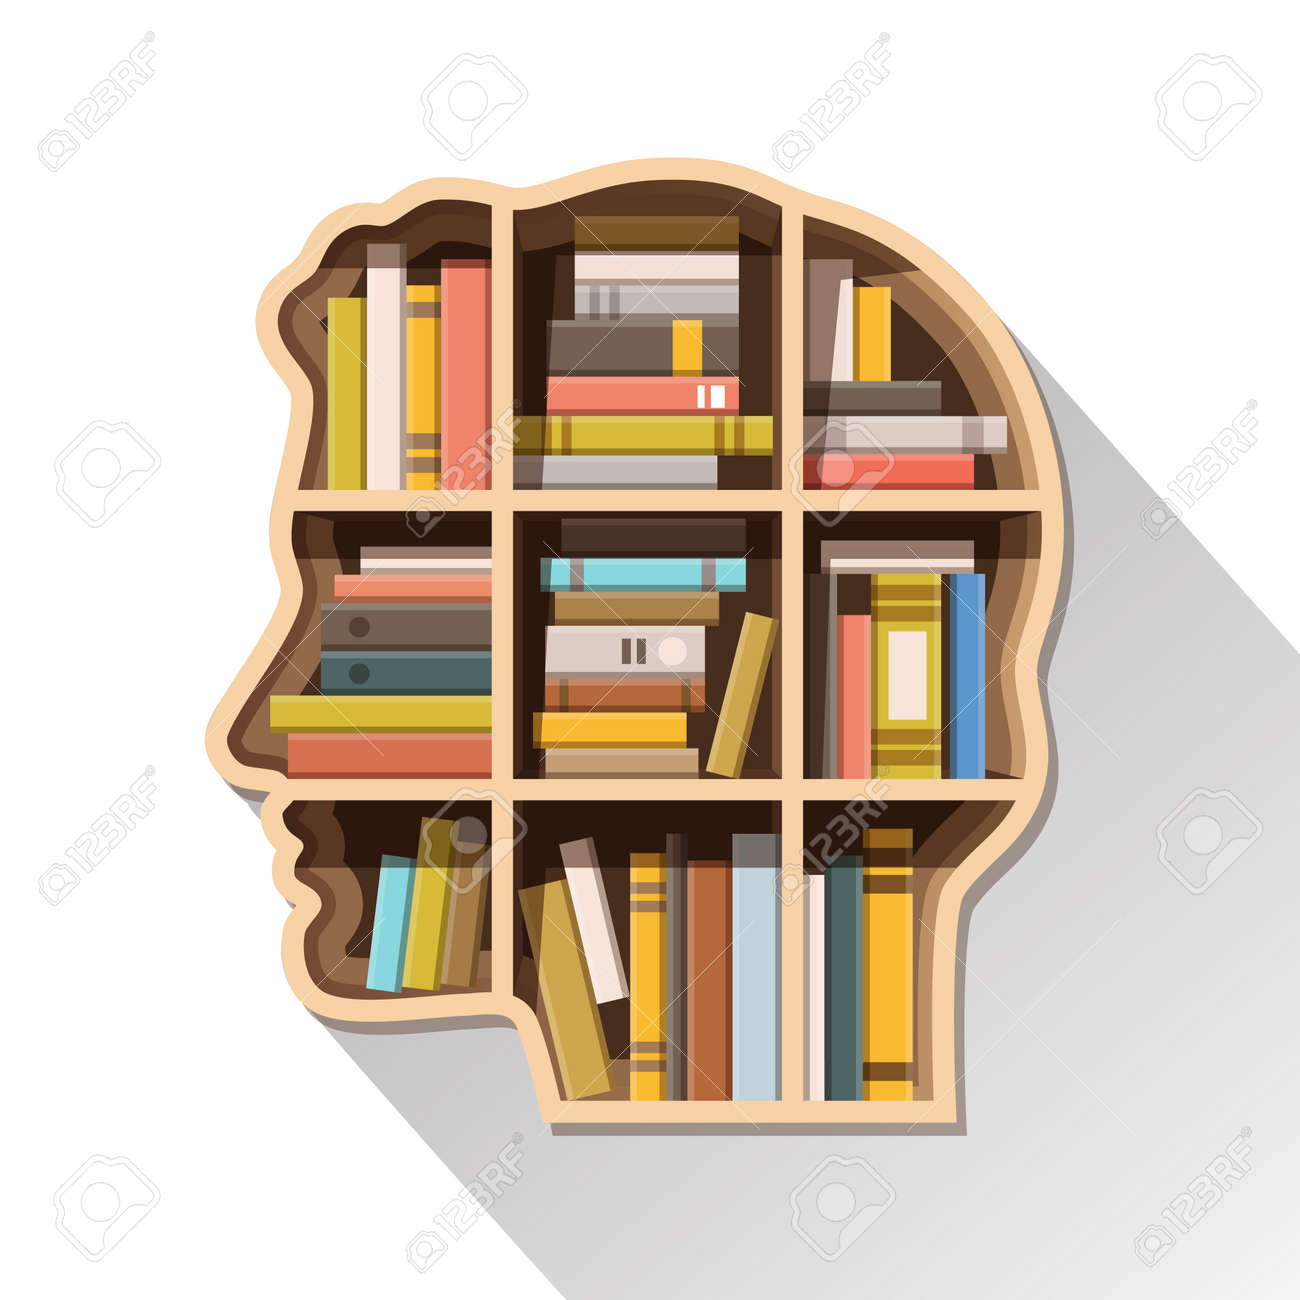 Education learning and knowledge concept Human head